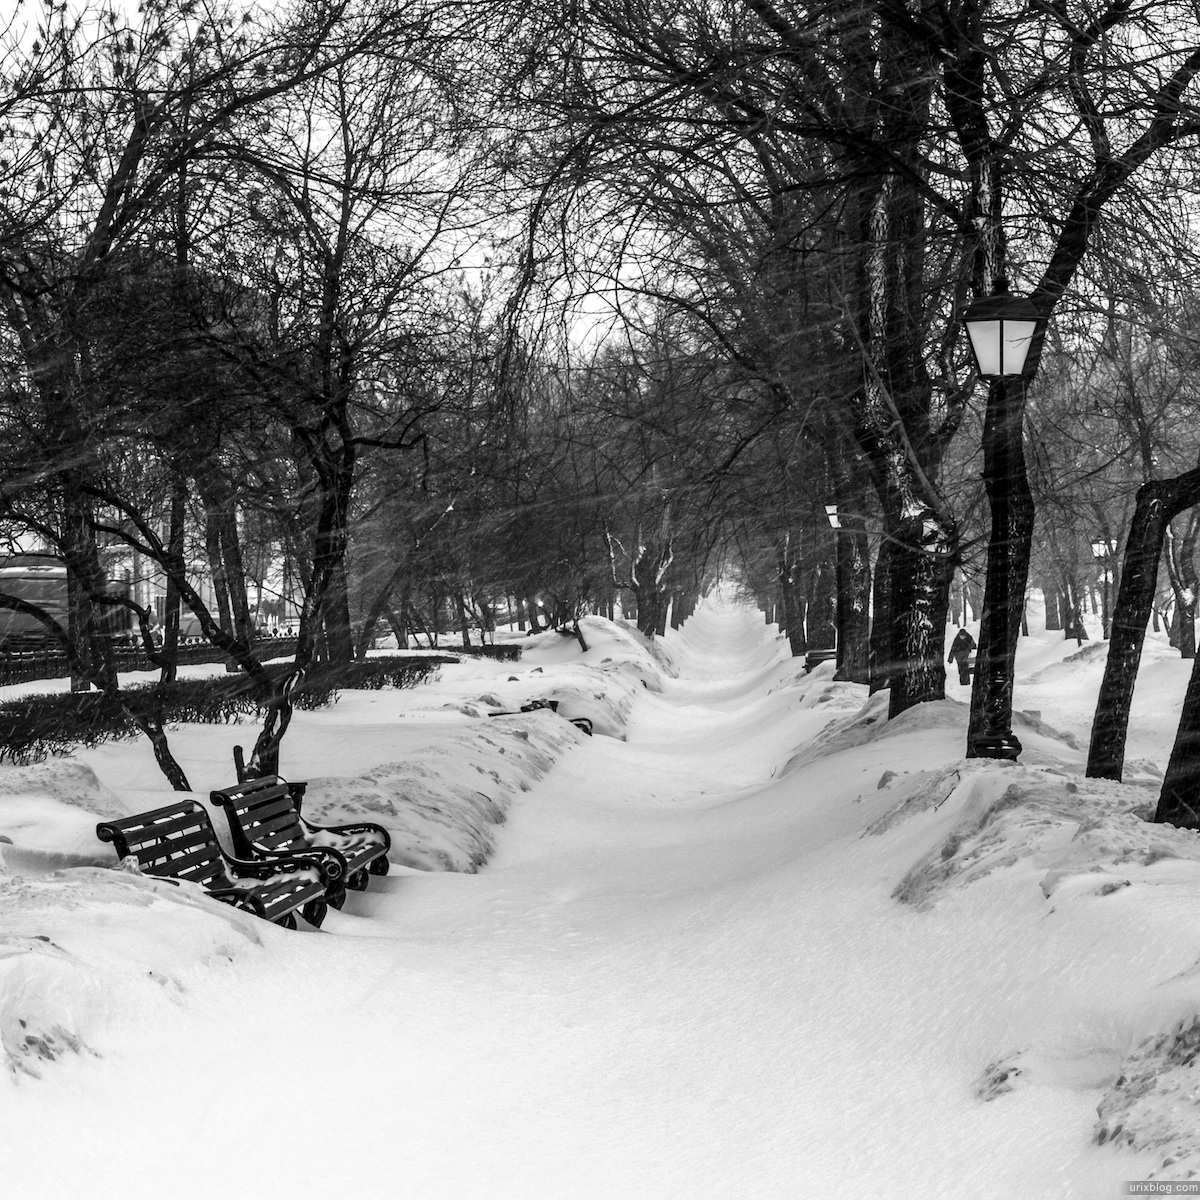 2013, Moscow, Weather, Russia, Tverskoy boulevard, Pushkin square, winter, spring, snow, cold, black and white, B/W